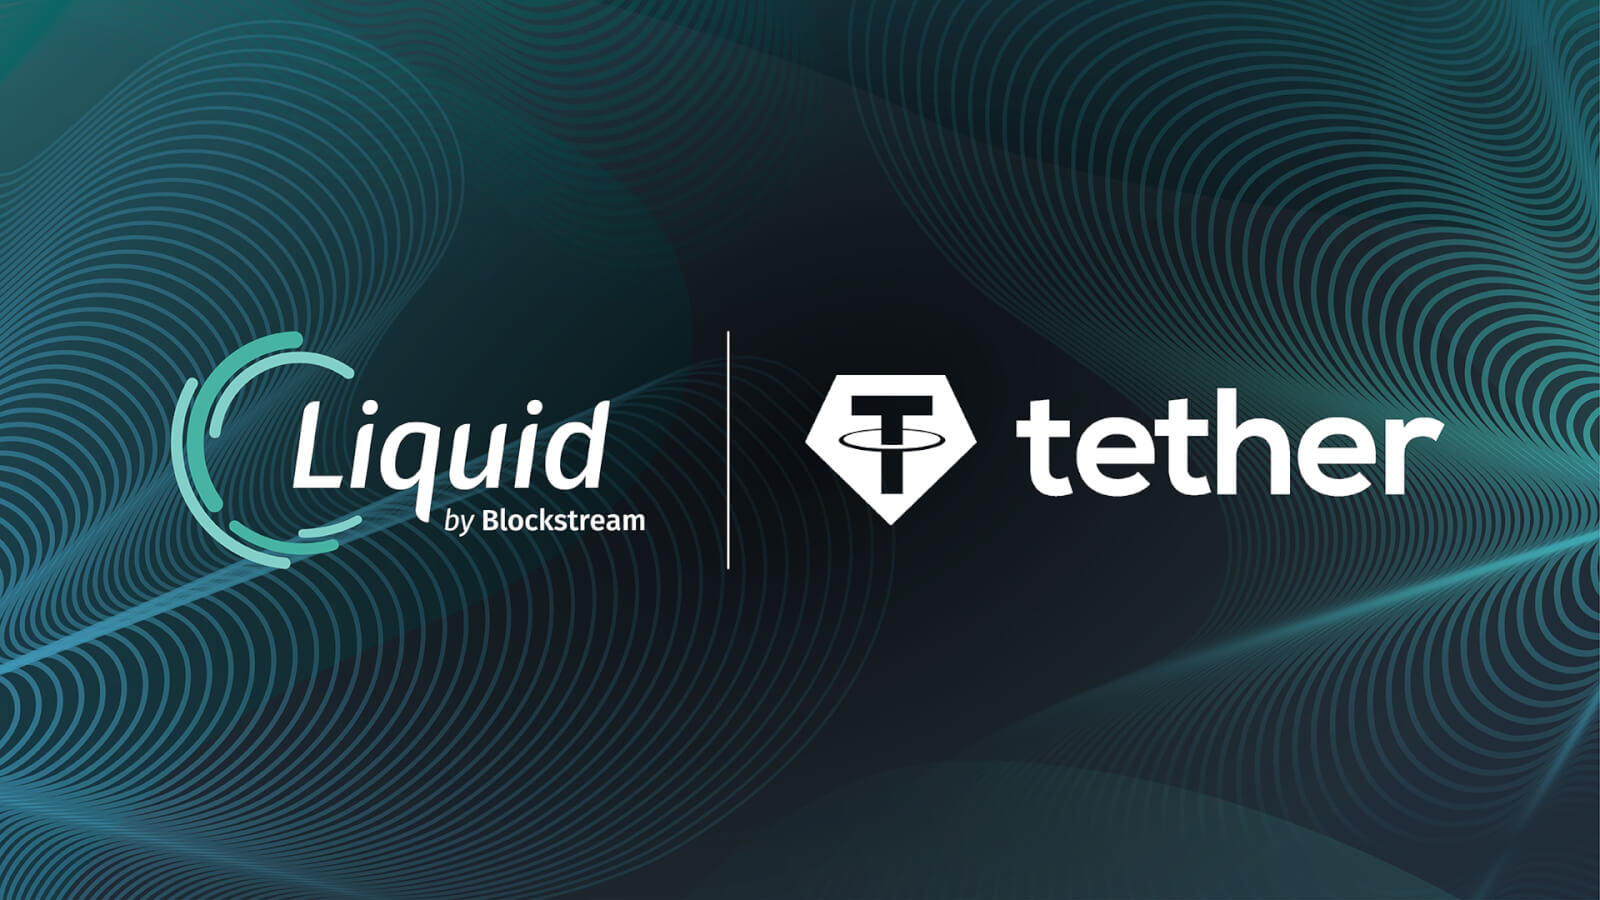 Tether on Liquid Network